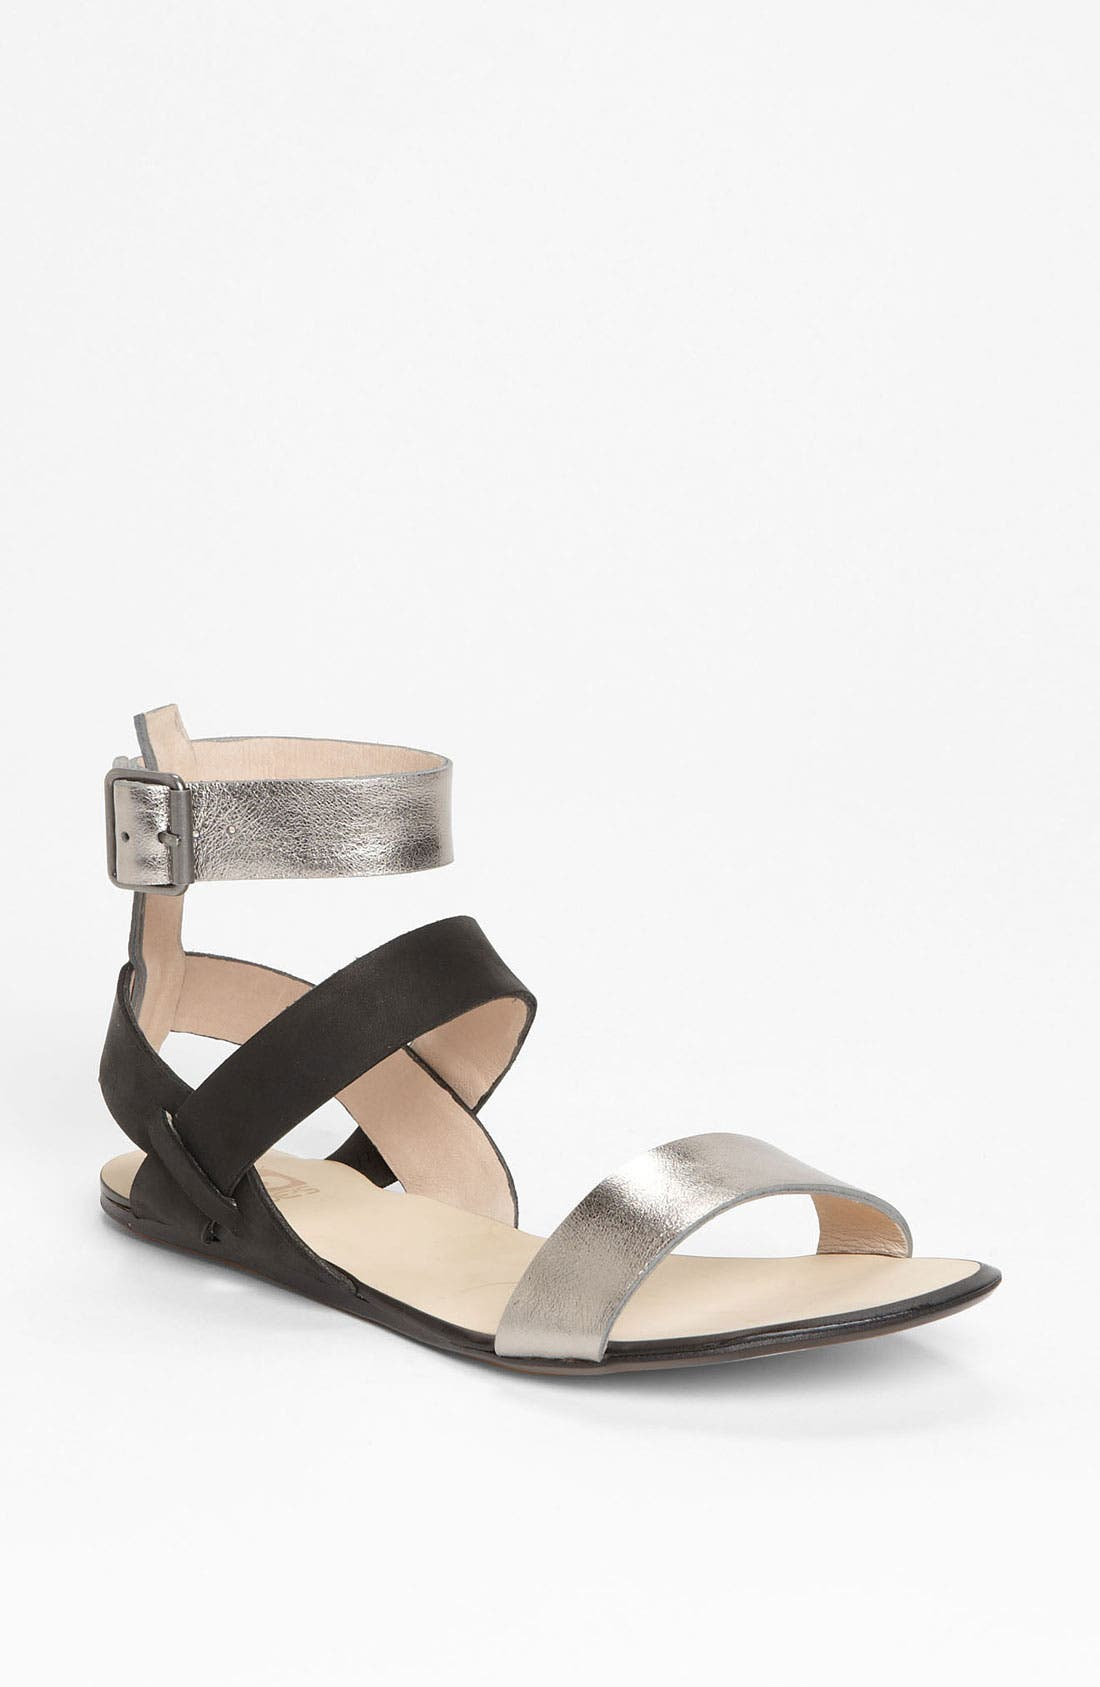 Alternate Image 1 Selected - Joe's 'Kody' Sandal